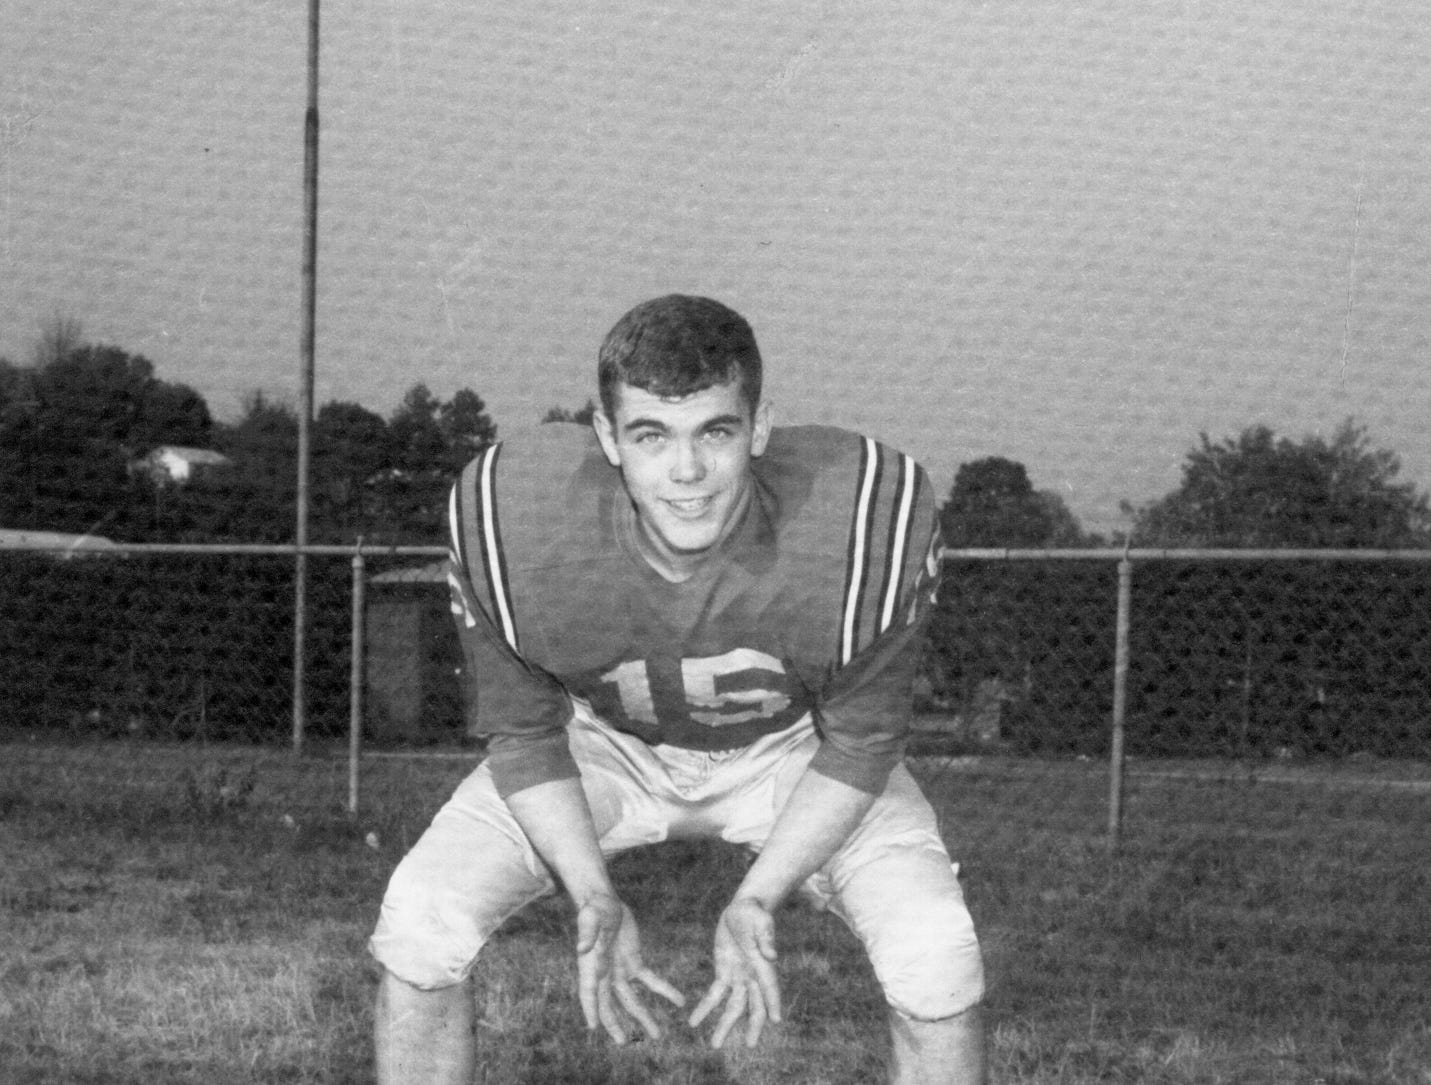 Young High School football player Sam Venable in the 1960s.